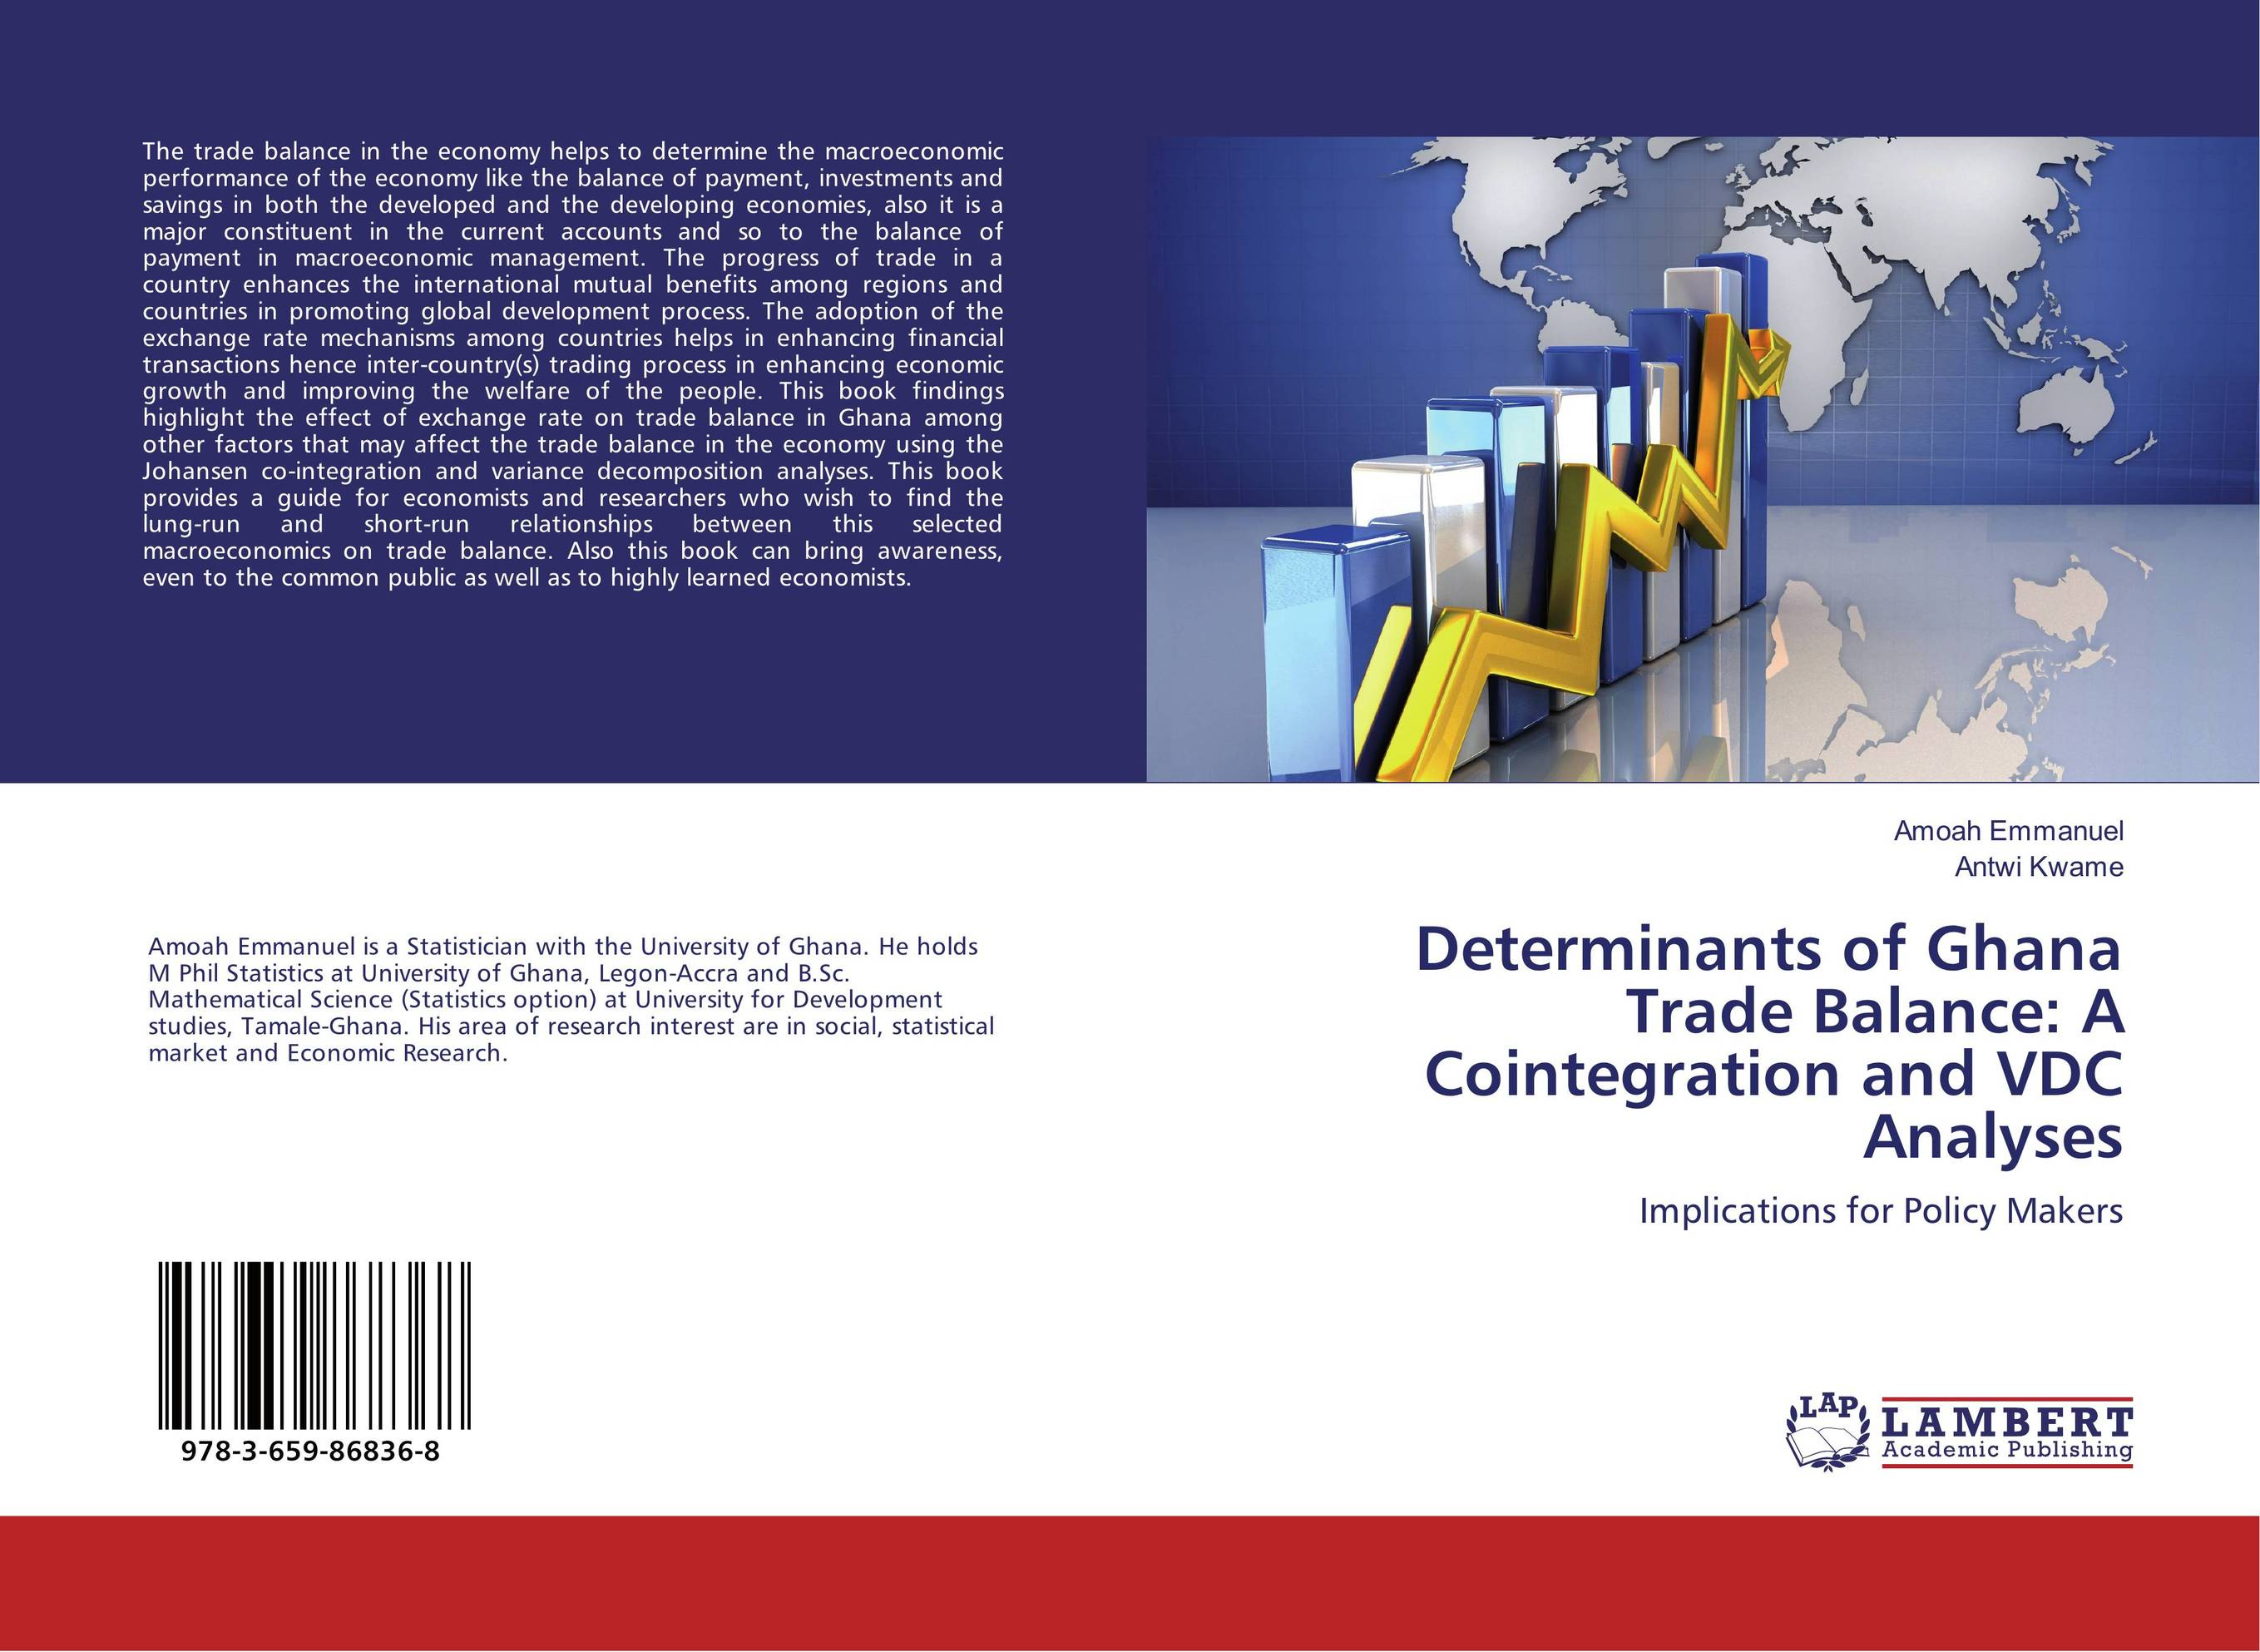 Determinants of Ghana Trade Balance: A Cointegration and VDC Analyses